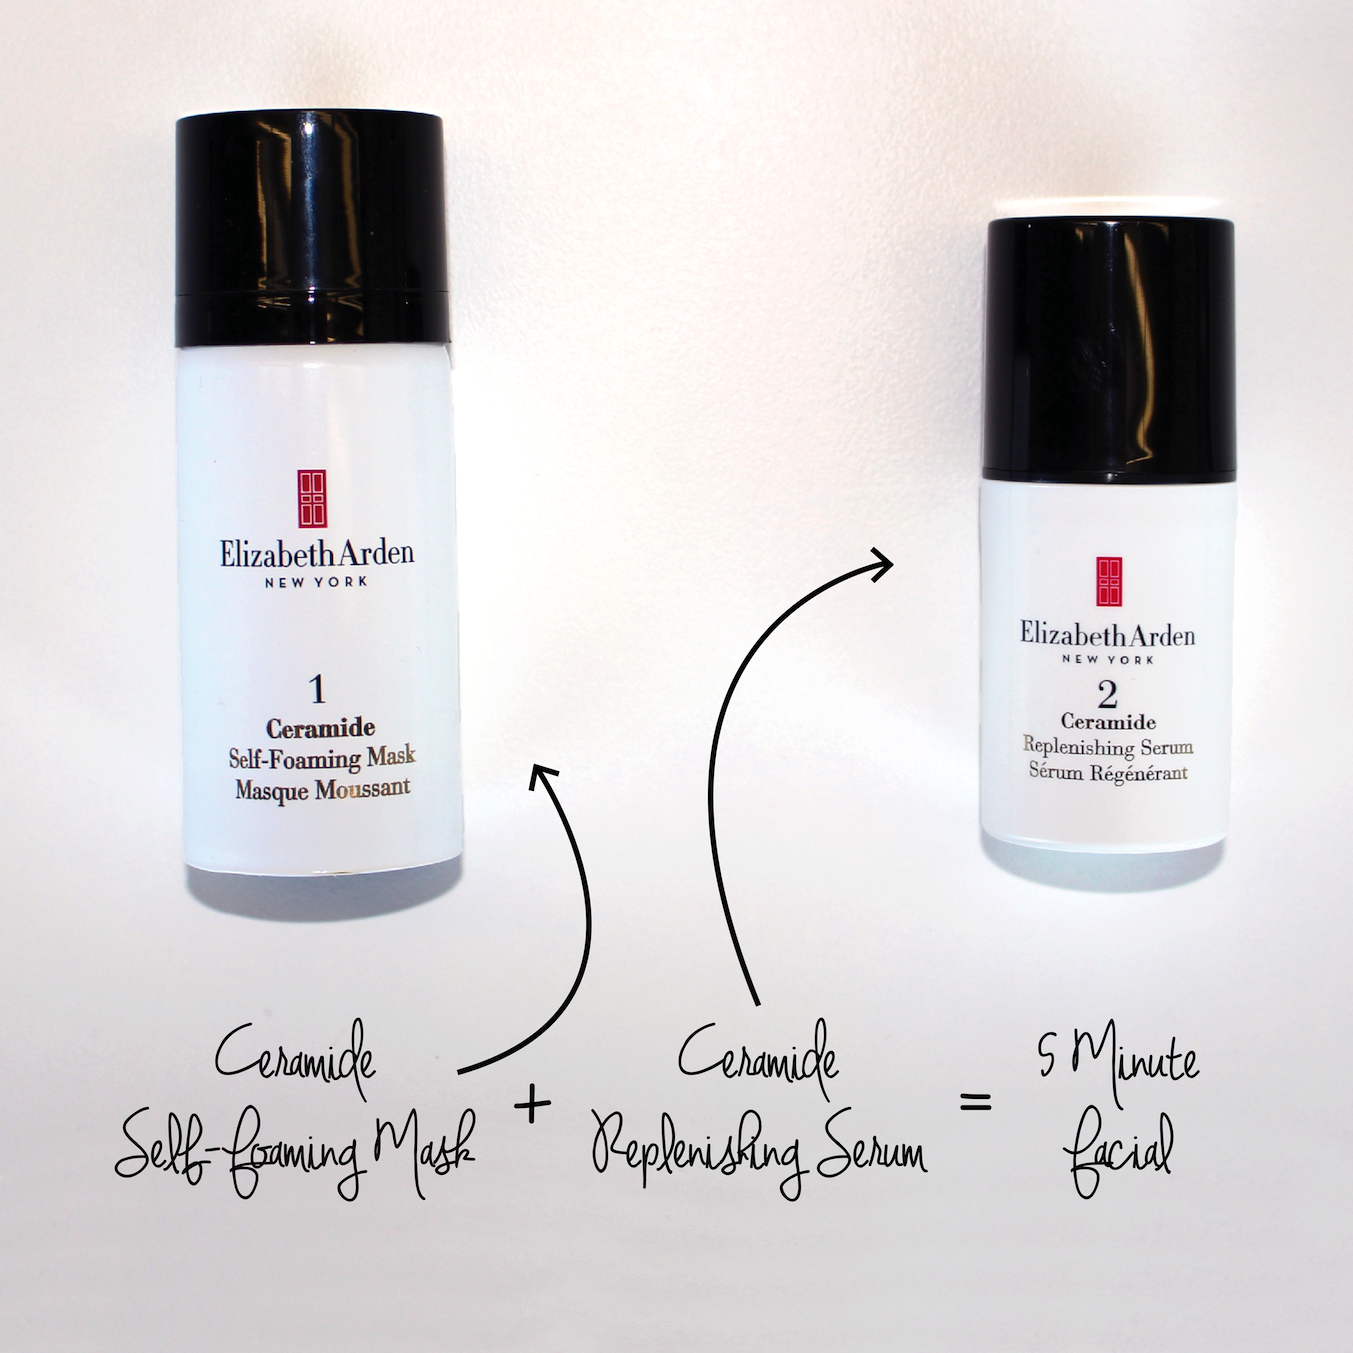 Spa Skin In Just 5 Minutes Yes Please New Ceramide 5 Minute Facial Skincare Best Face Products Elizabeth Arden Makeup Ceramides